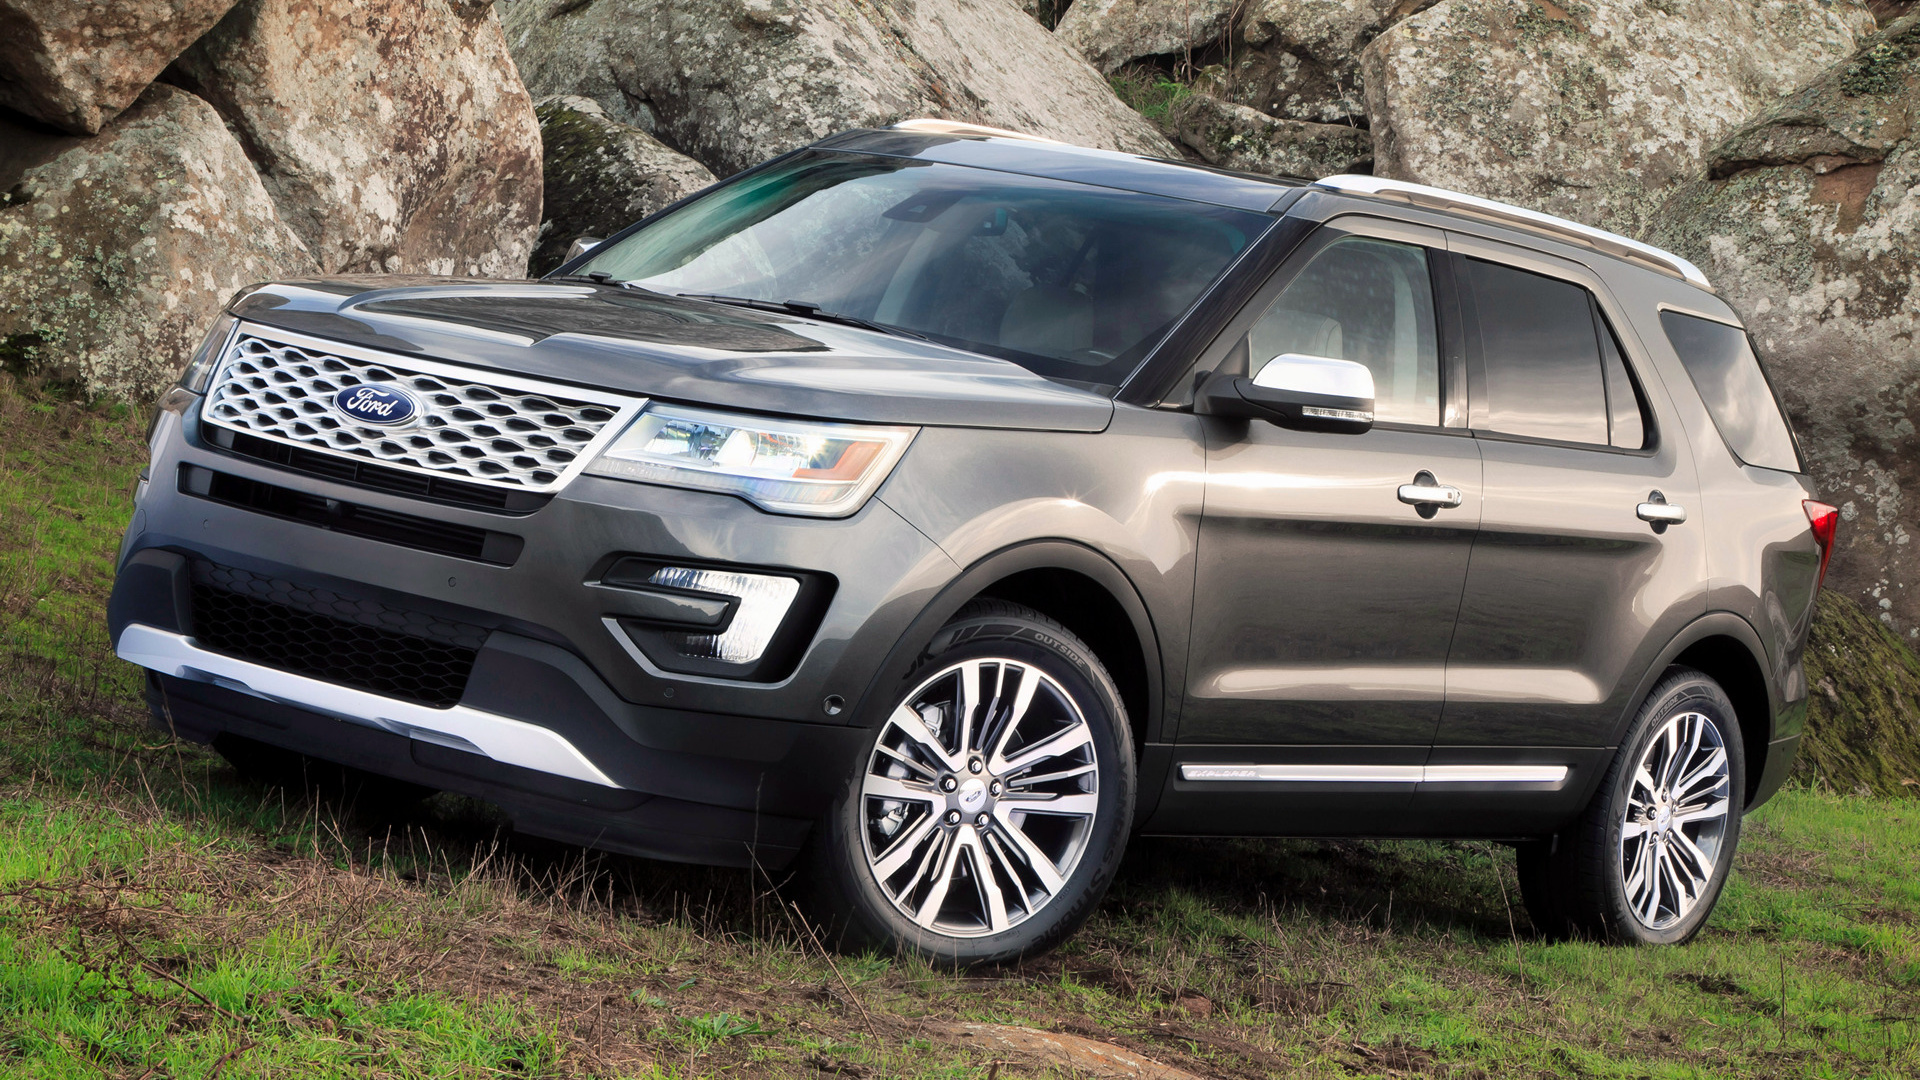 1920x1080 - Ford Explorer Wallpapers 20